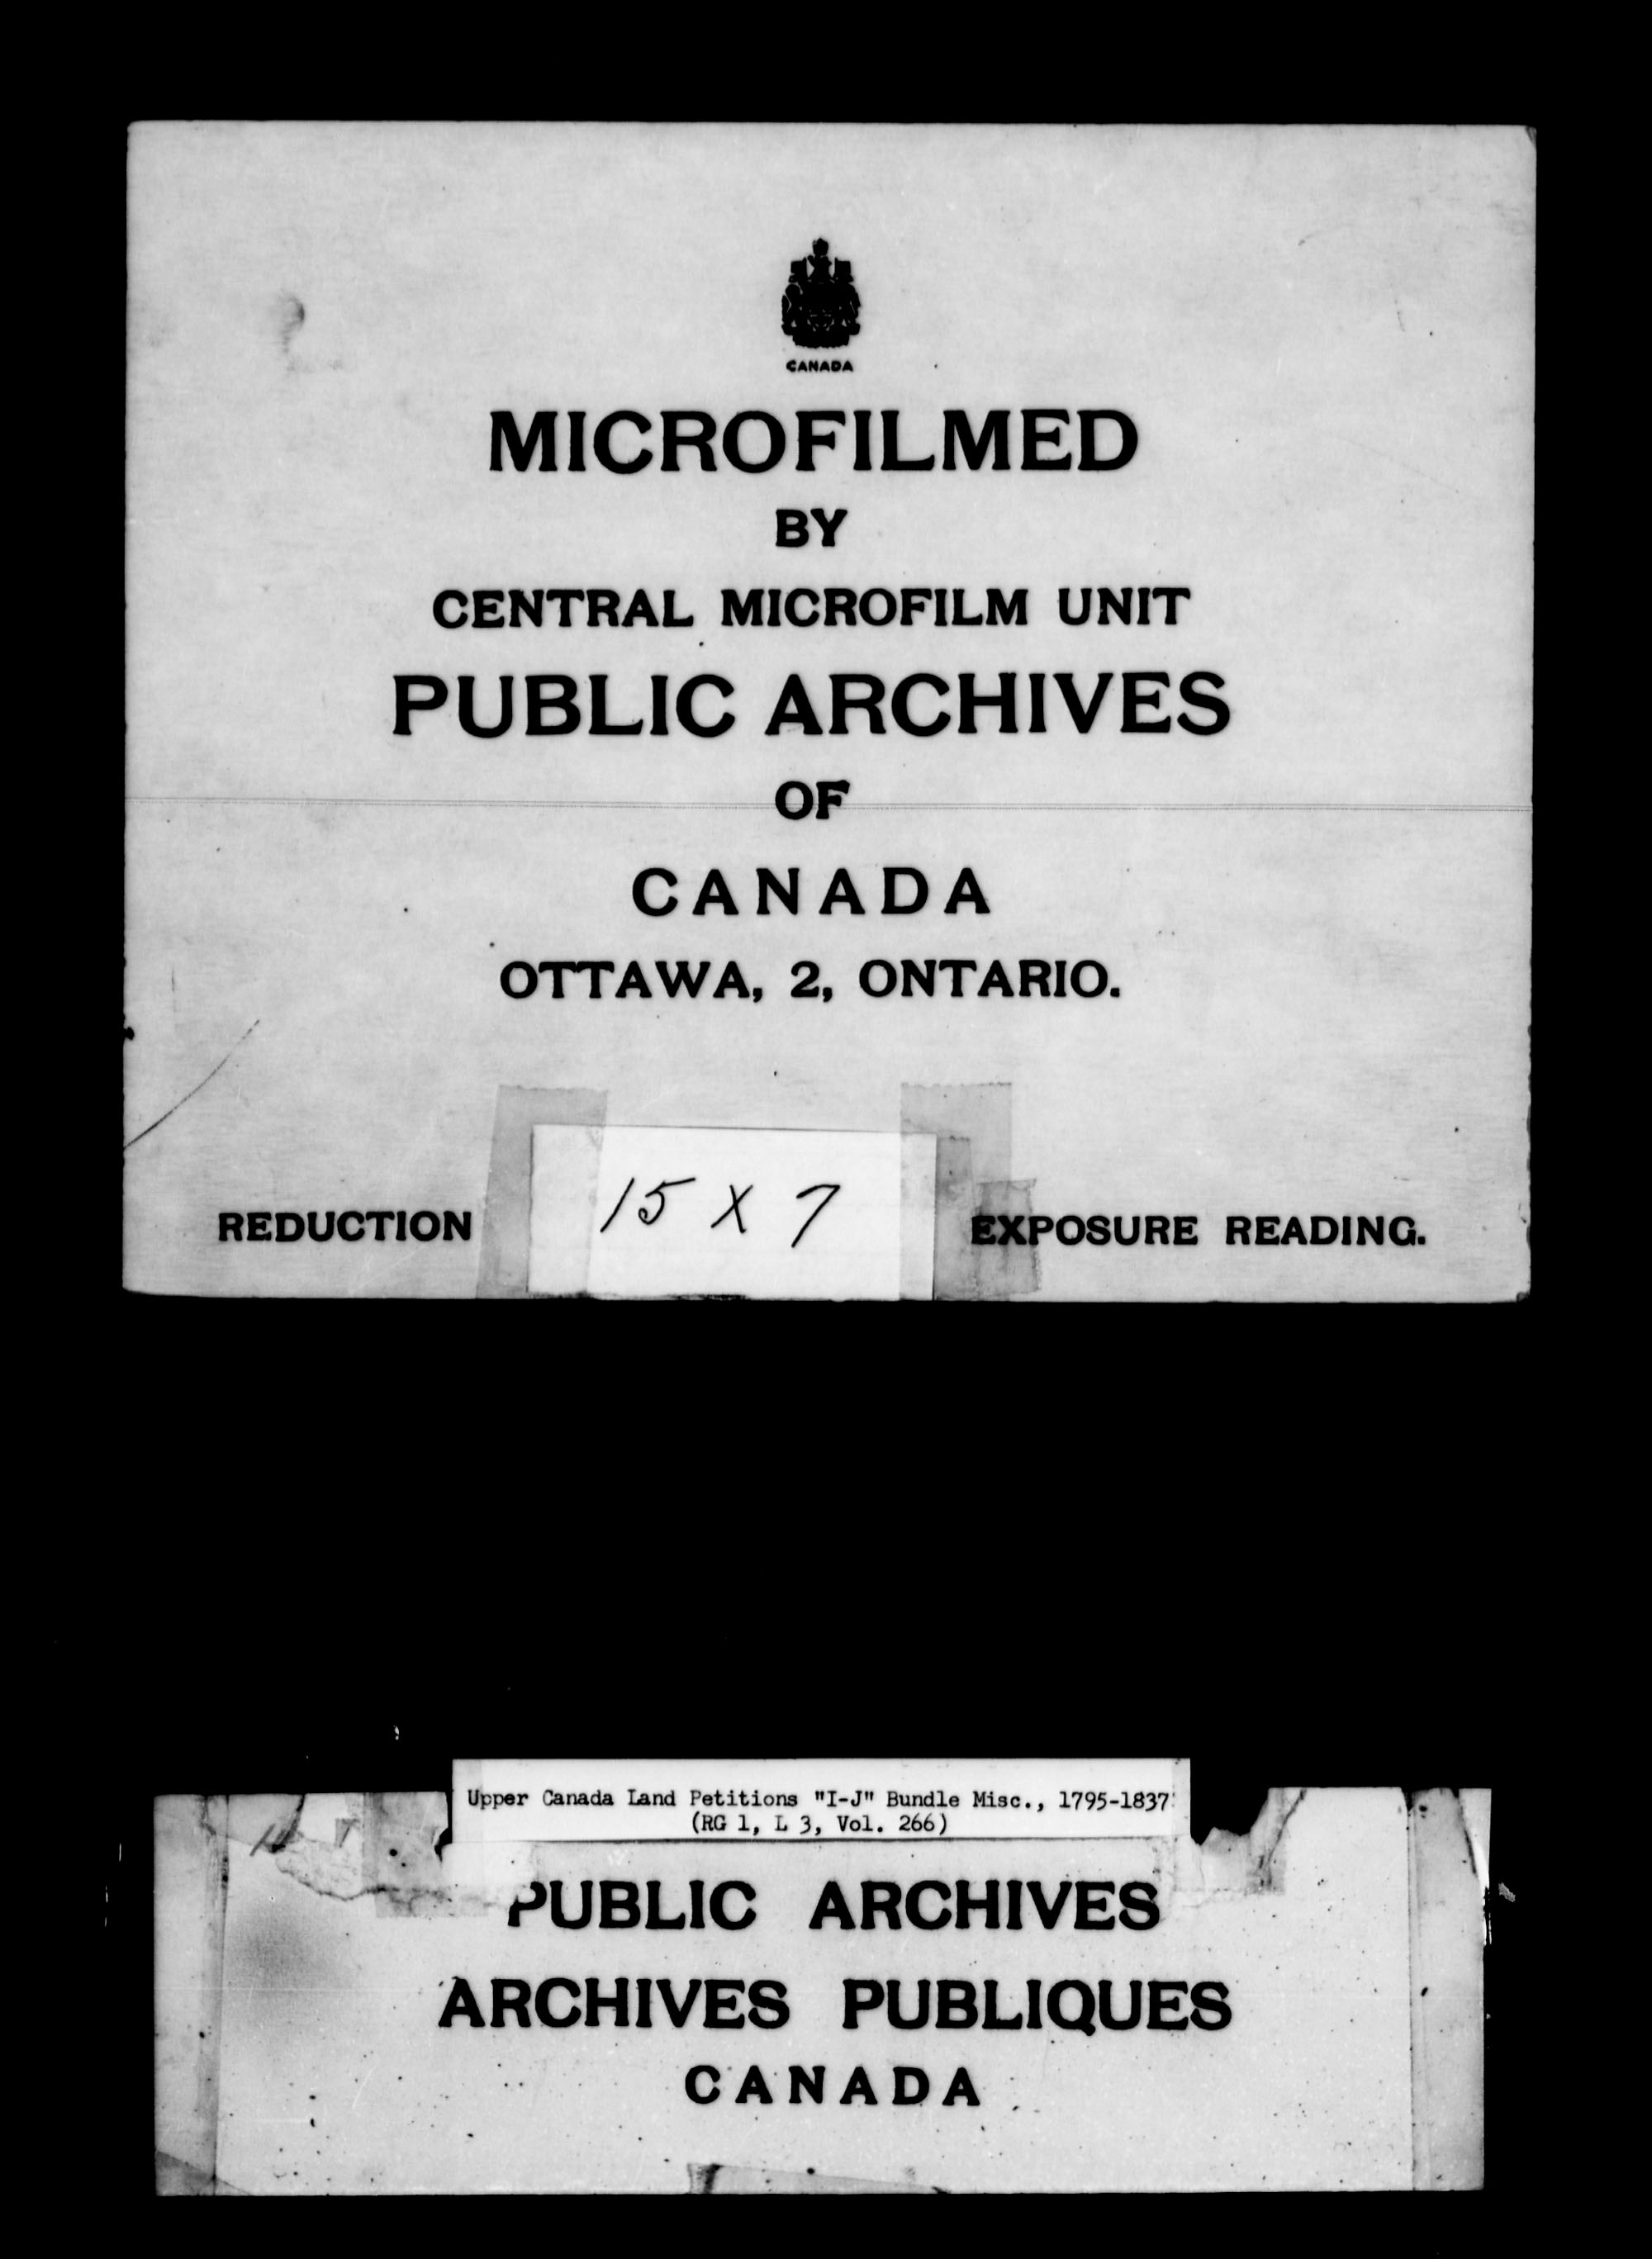 Title: Upper Canada Land Petitions (1763-1865) - Mikan Number: 205131 - Microform: c-2116